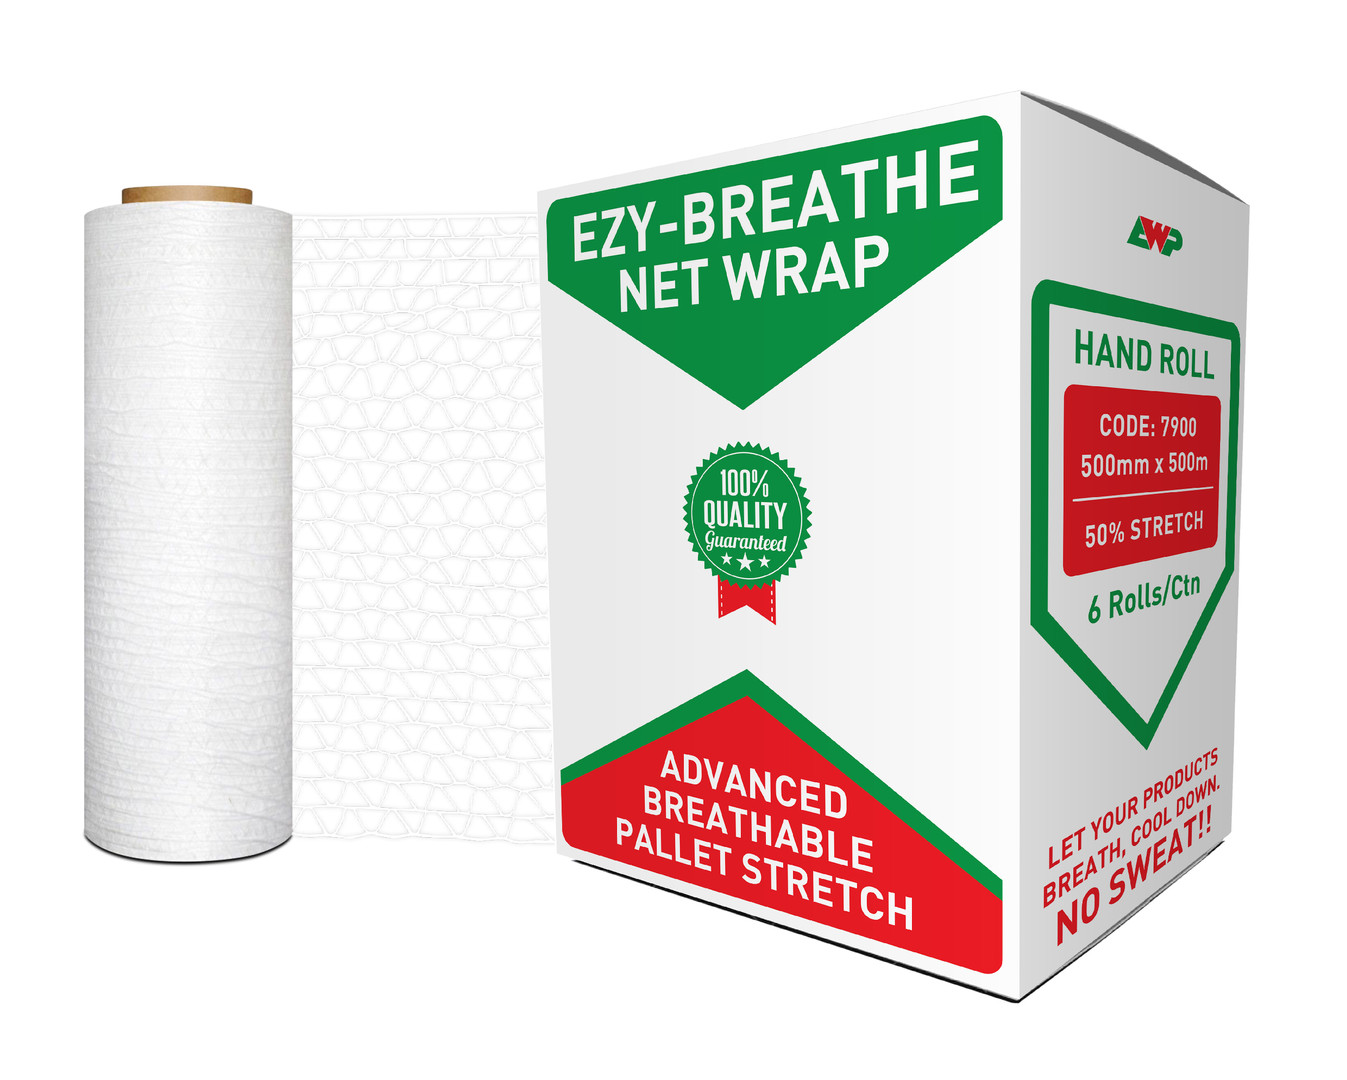 Ezy-Breathe Net Wrap_3D.jpg